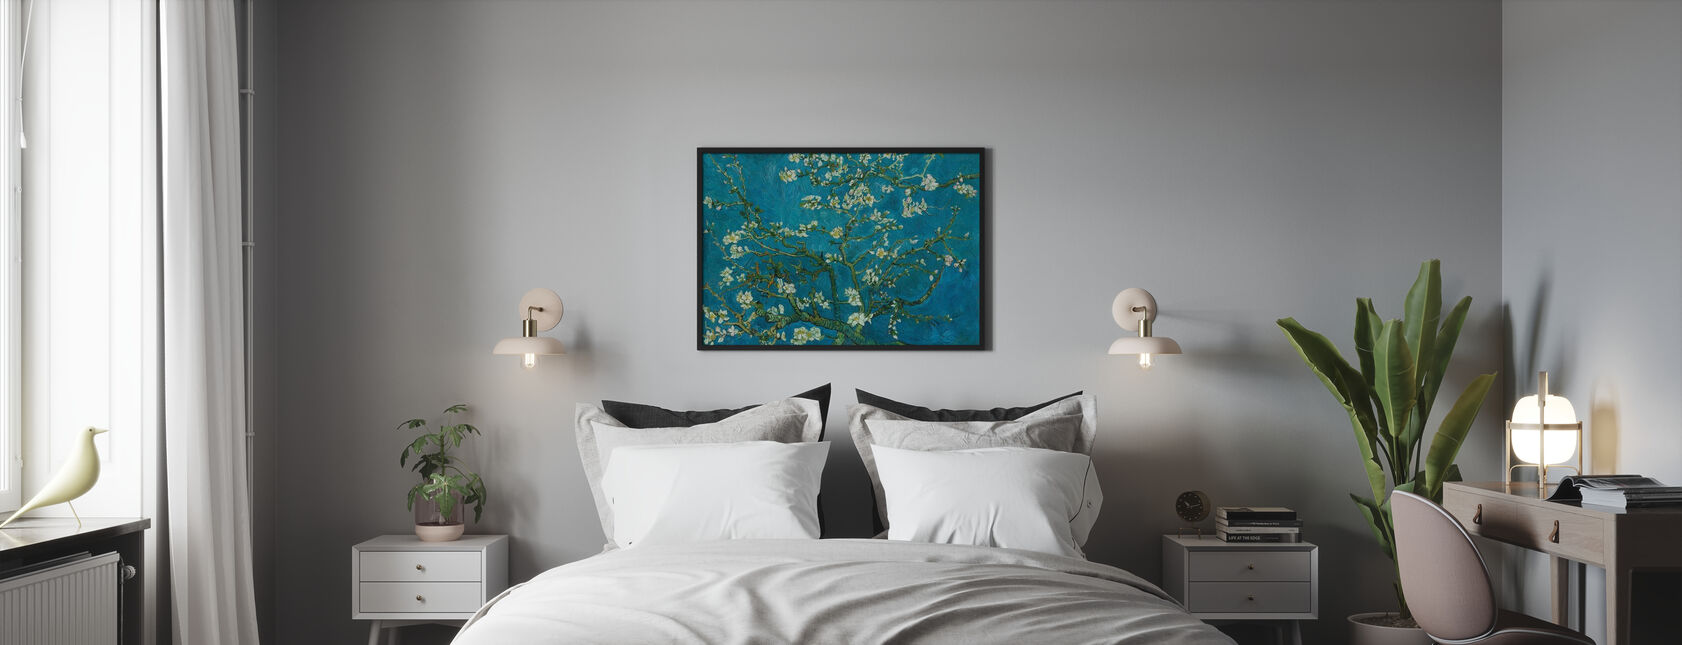 Almond Blossom - Poster - Bedroom